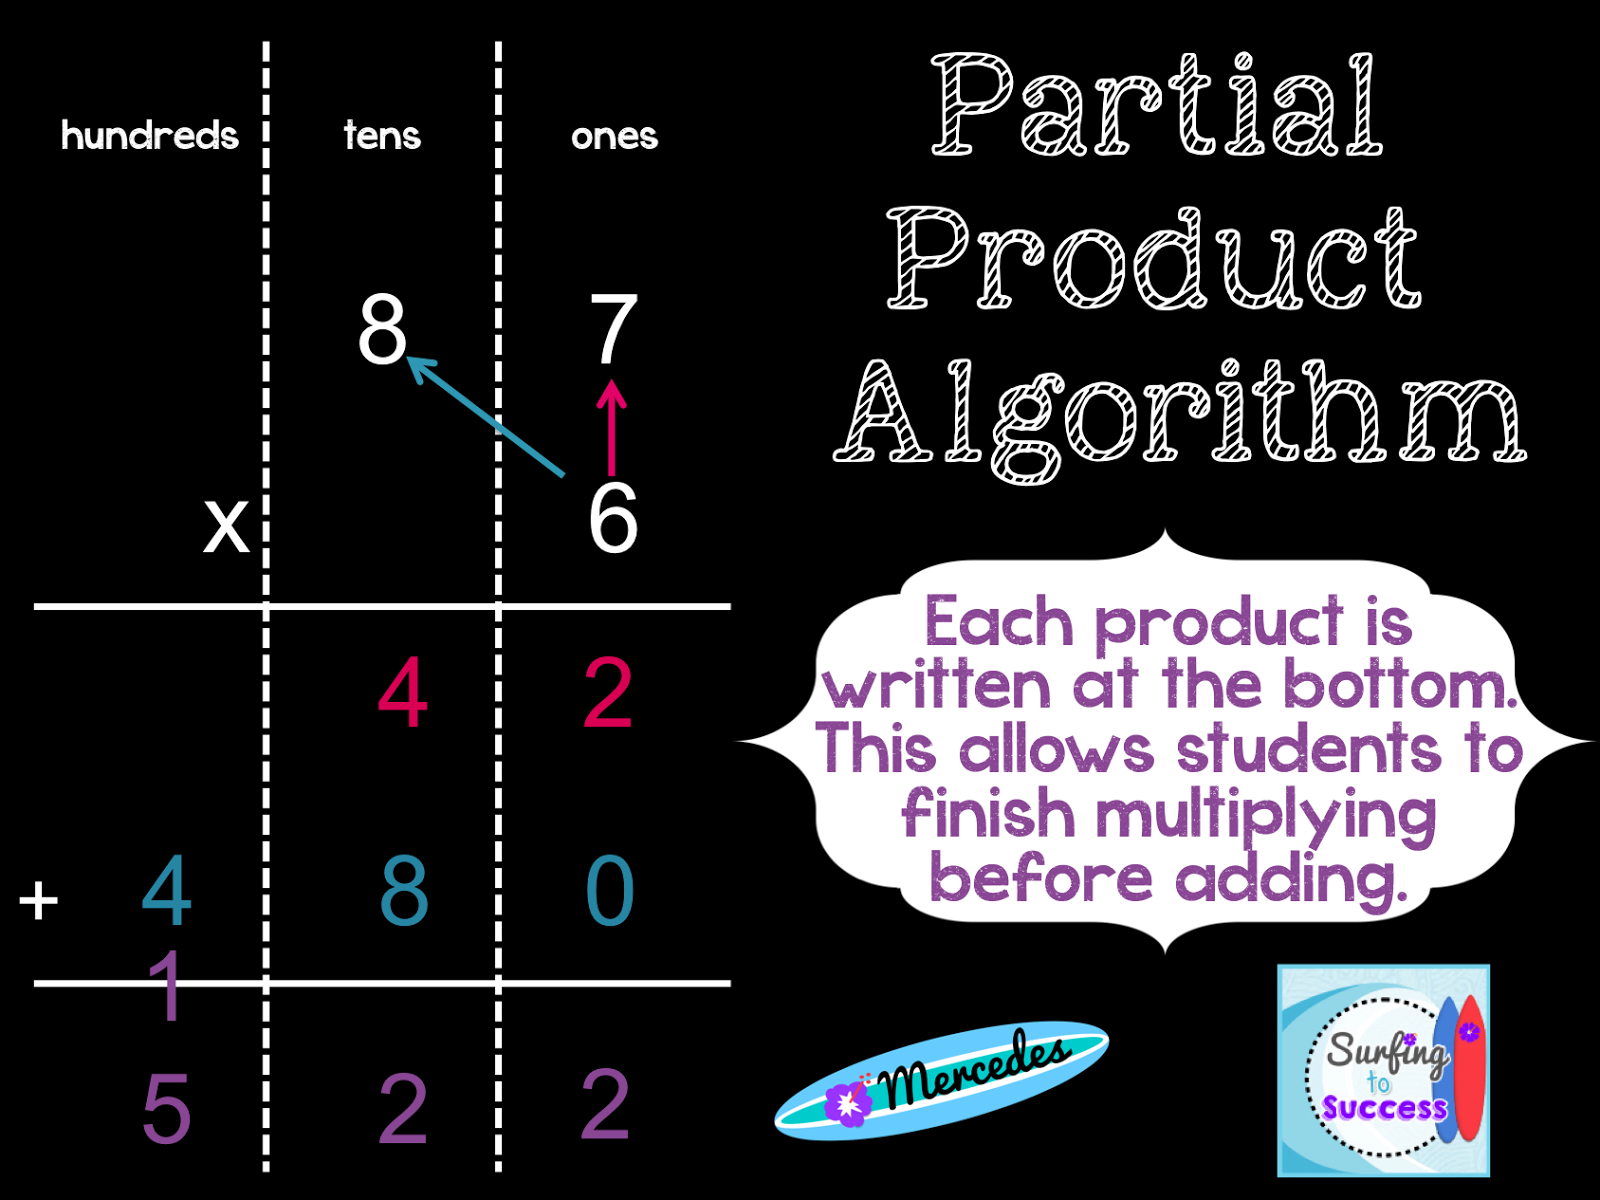 Surfing To Success 3 Strategies For Multiplying Multi